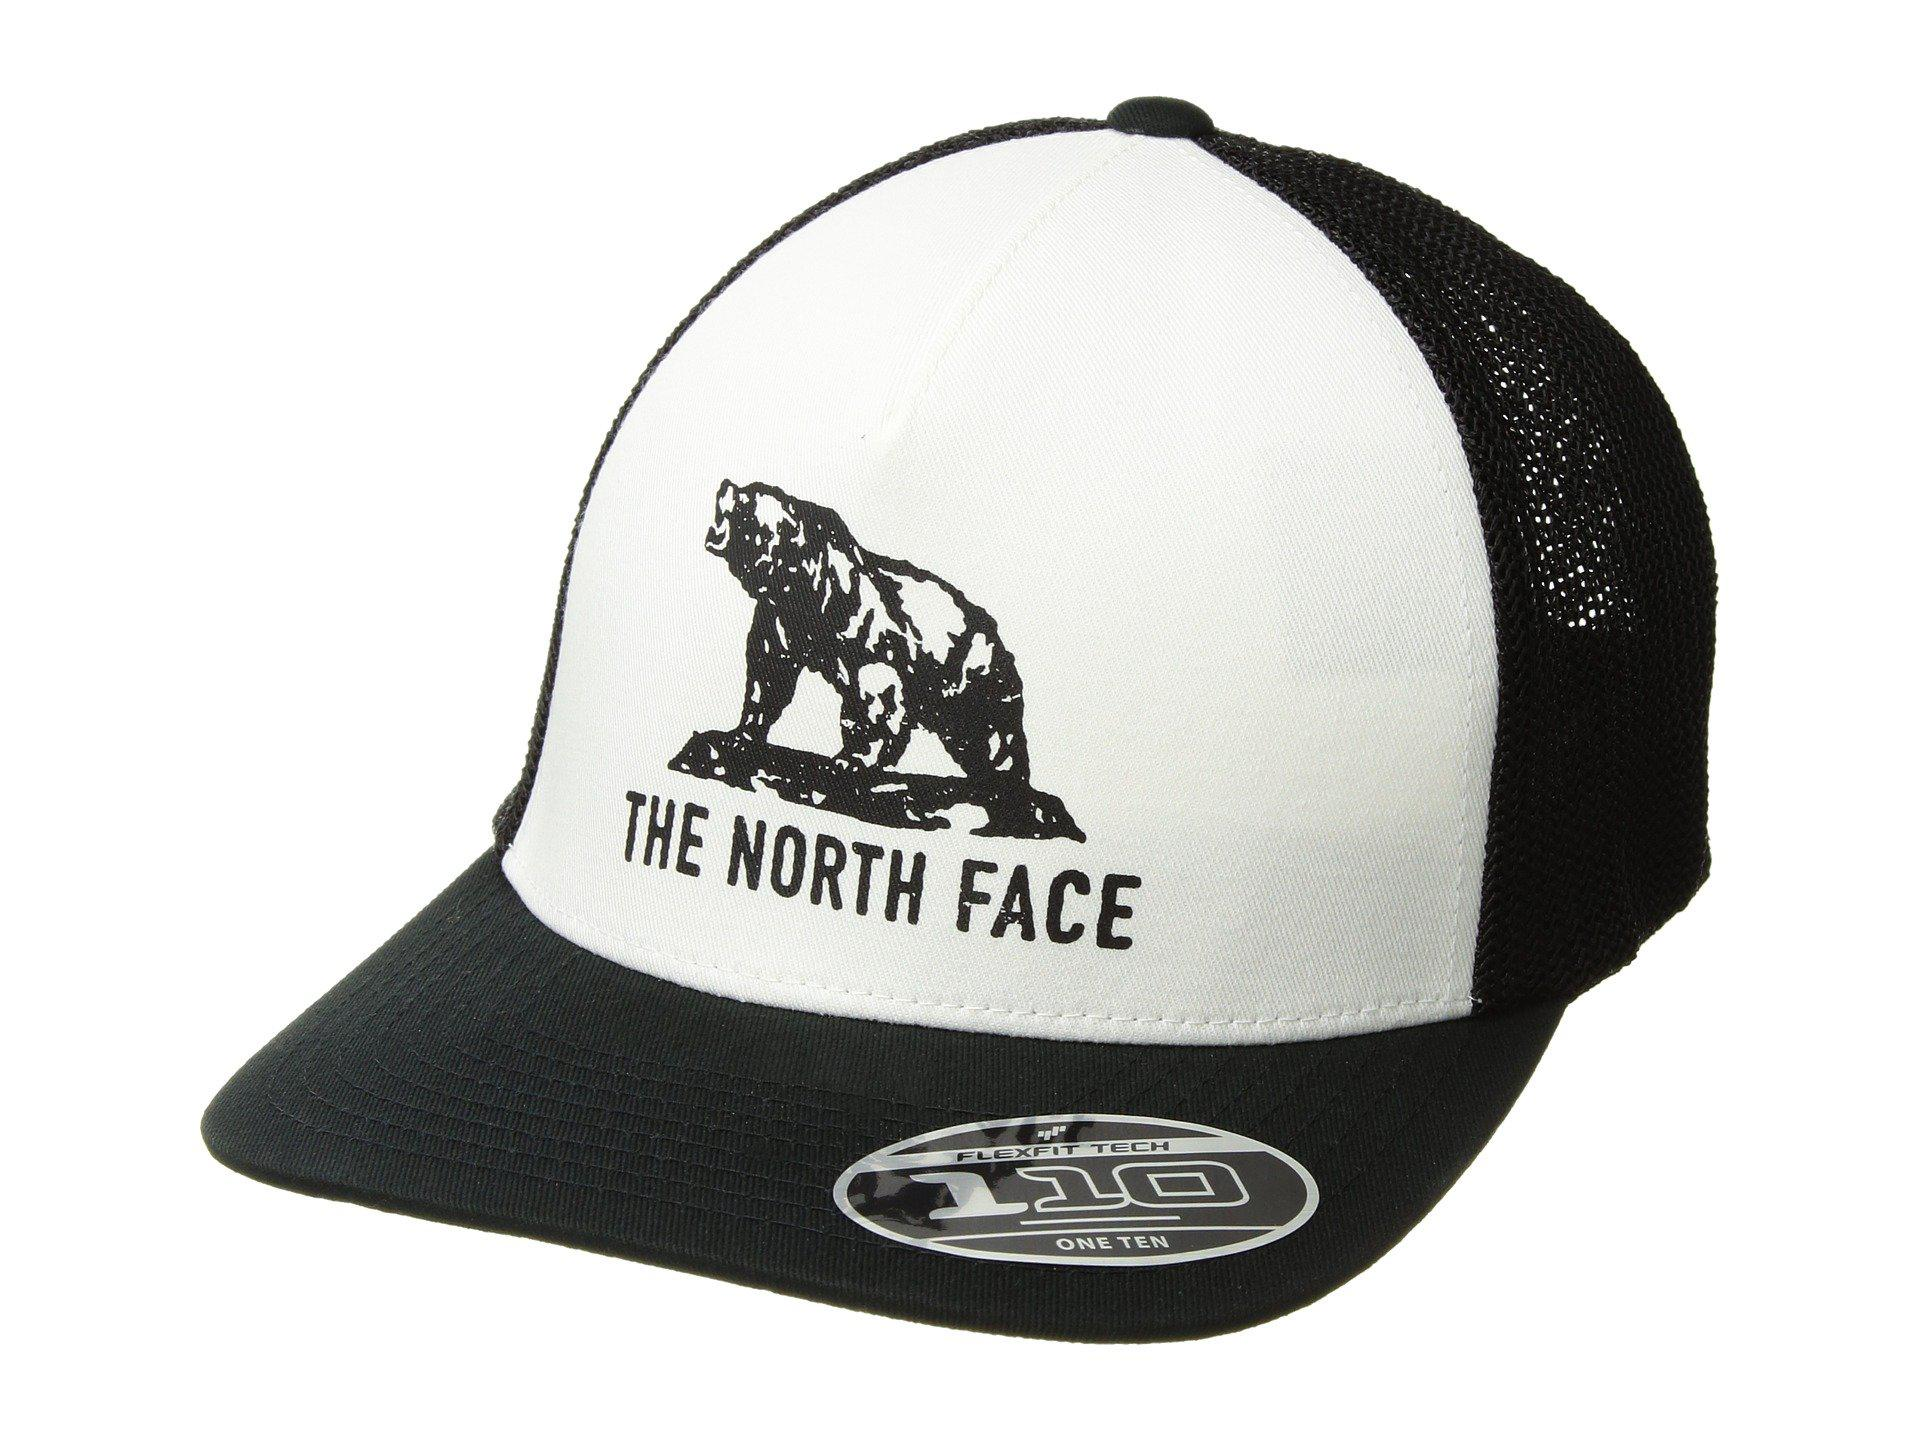 8ddd7d35d37 Lyst - The North Face Keep It Structured Trucker Hat (four Leaf ...